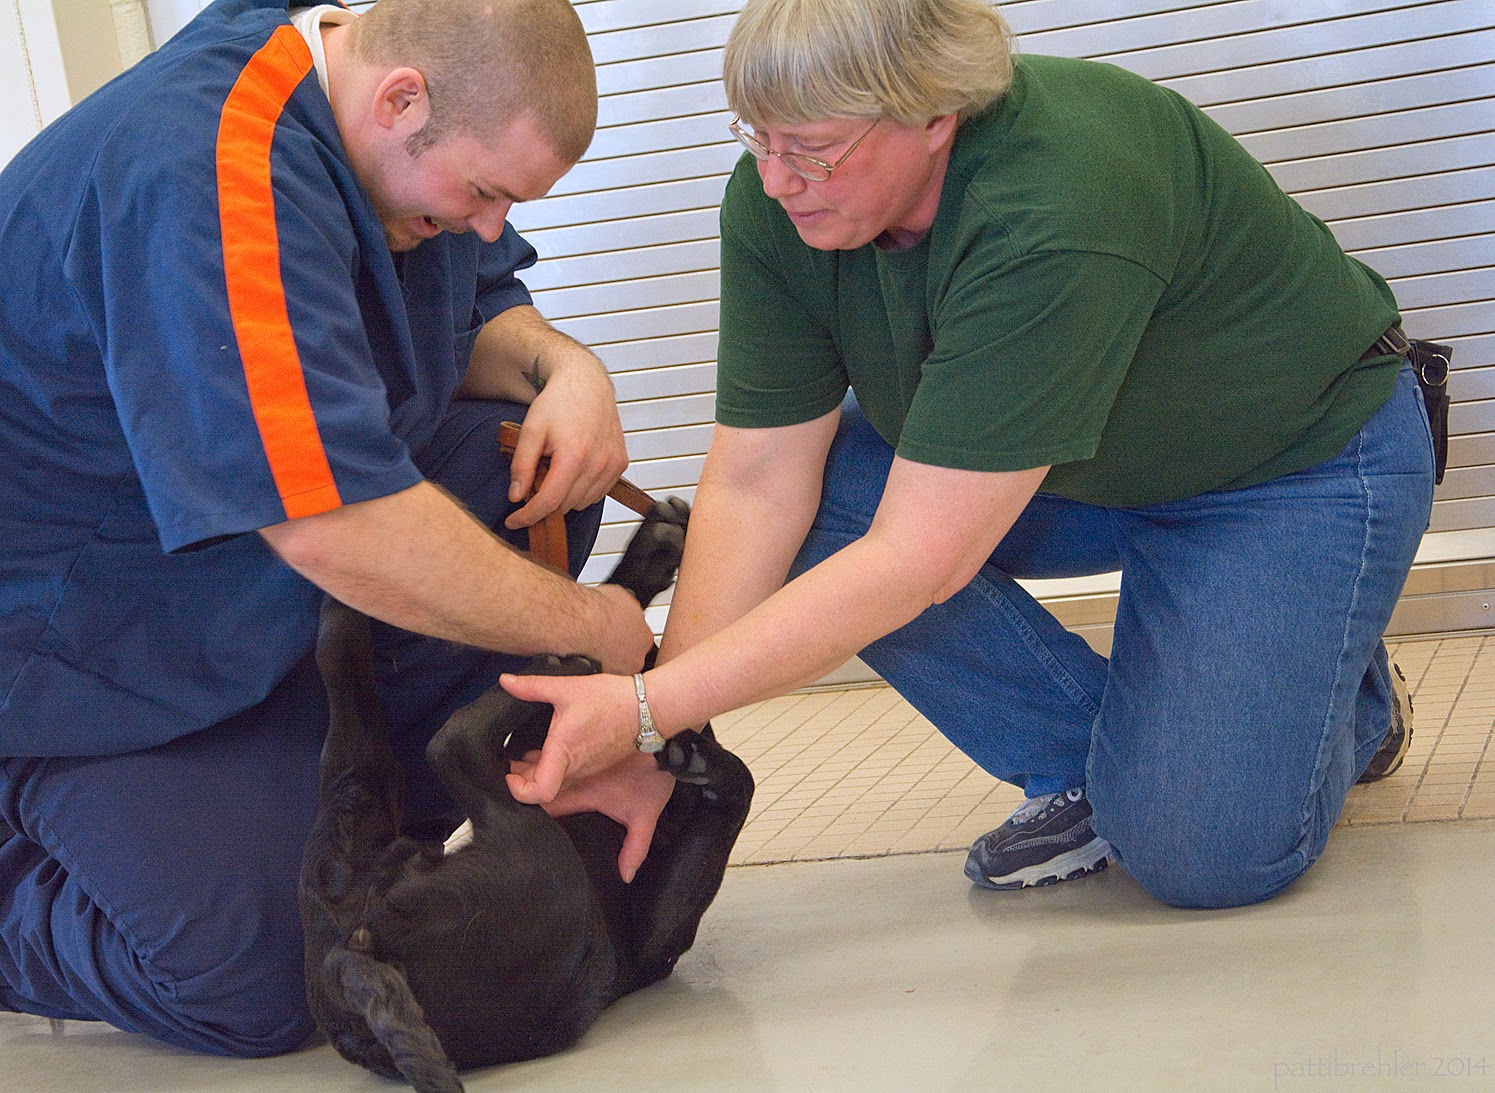 Now the woman is kneeling on one knee on the right side of the photo. She is leaning forward trying to checkt he paws of a small black lab puppy who is lying on his back on the floor. The puppy's four paws are wiggling in the air. A man is kneeling to the left of the puppy and trying to hold him still with his right hand. The man is lookng down at the puppy and laughing. He is wearing the blue prison uniform.